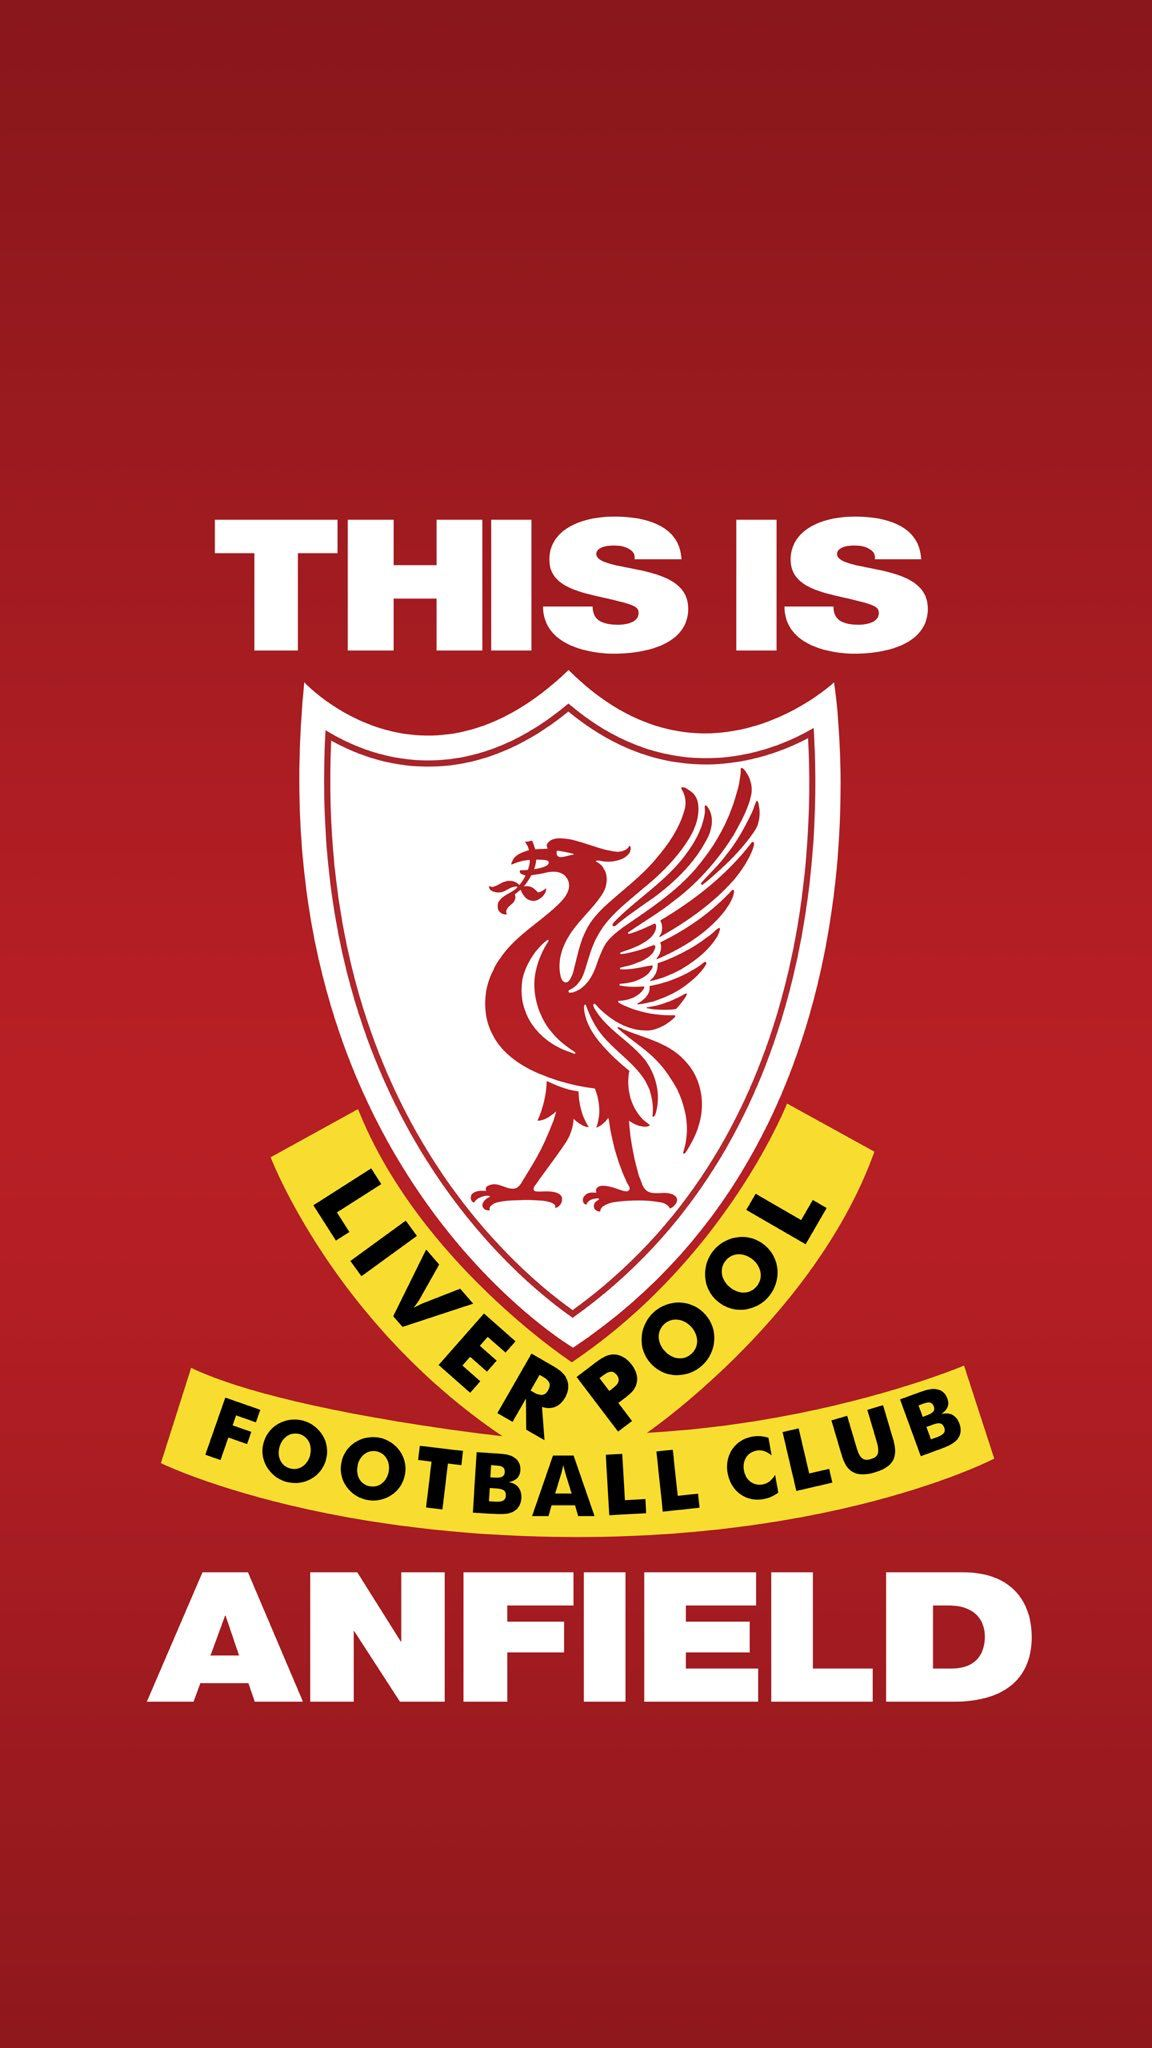 Pin by Kublai Reds on Footy | Liverpool wallpapers, Liverpool logo, Liverpool football club ...